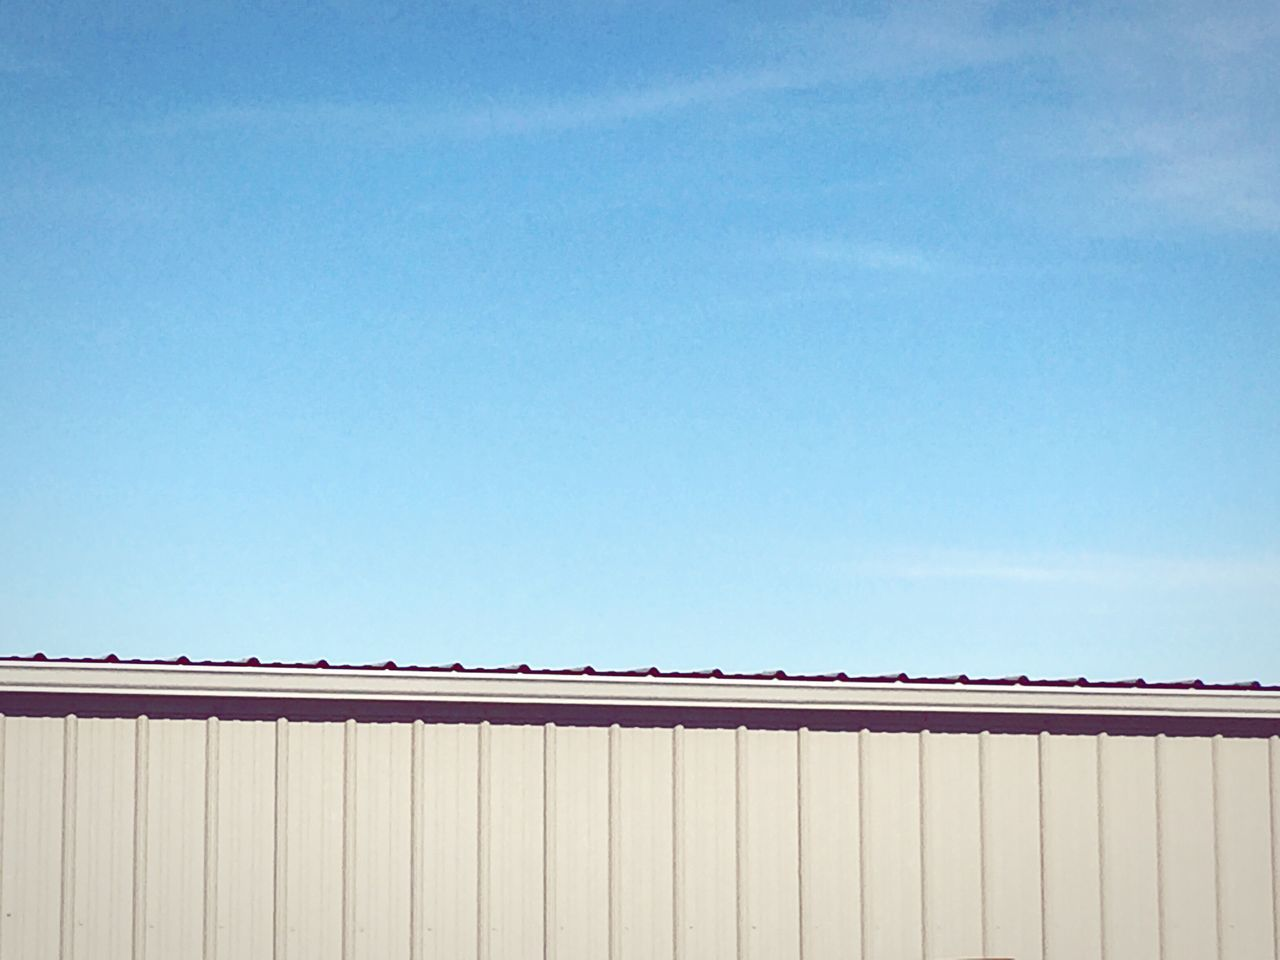 copy space, day, outdoors, clear sky, no people, blue, architecture, building exterior, sky, nature, corrugated iron